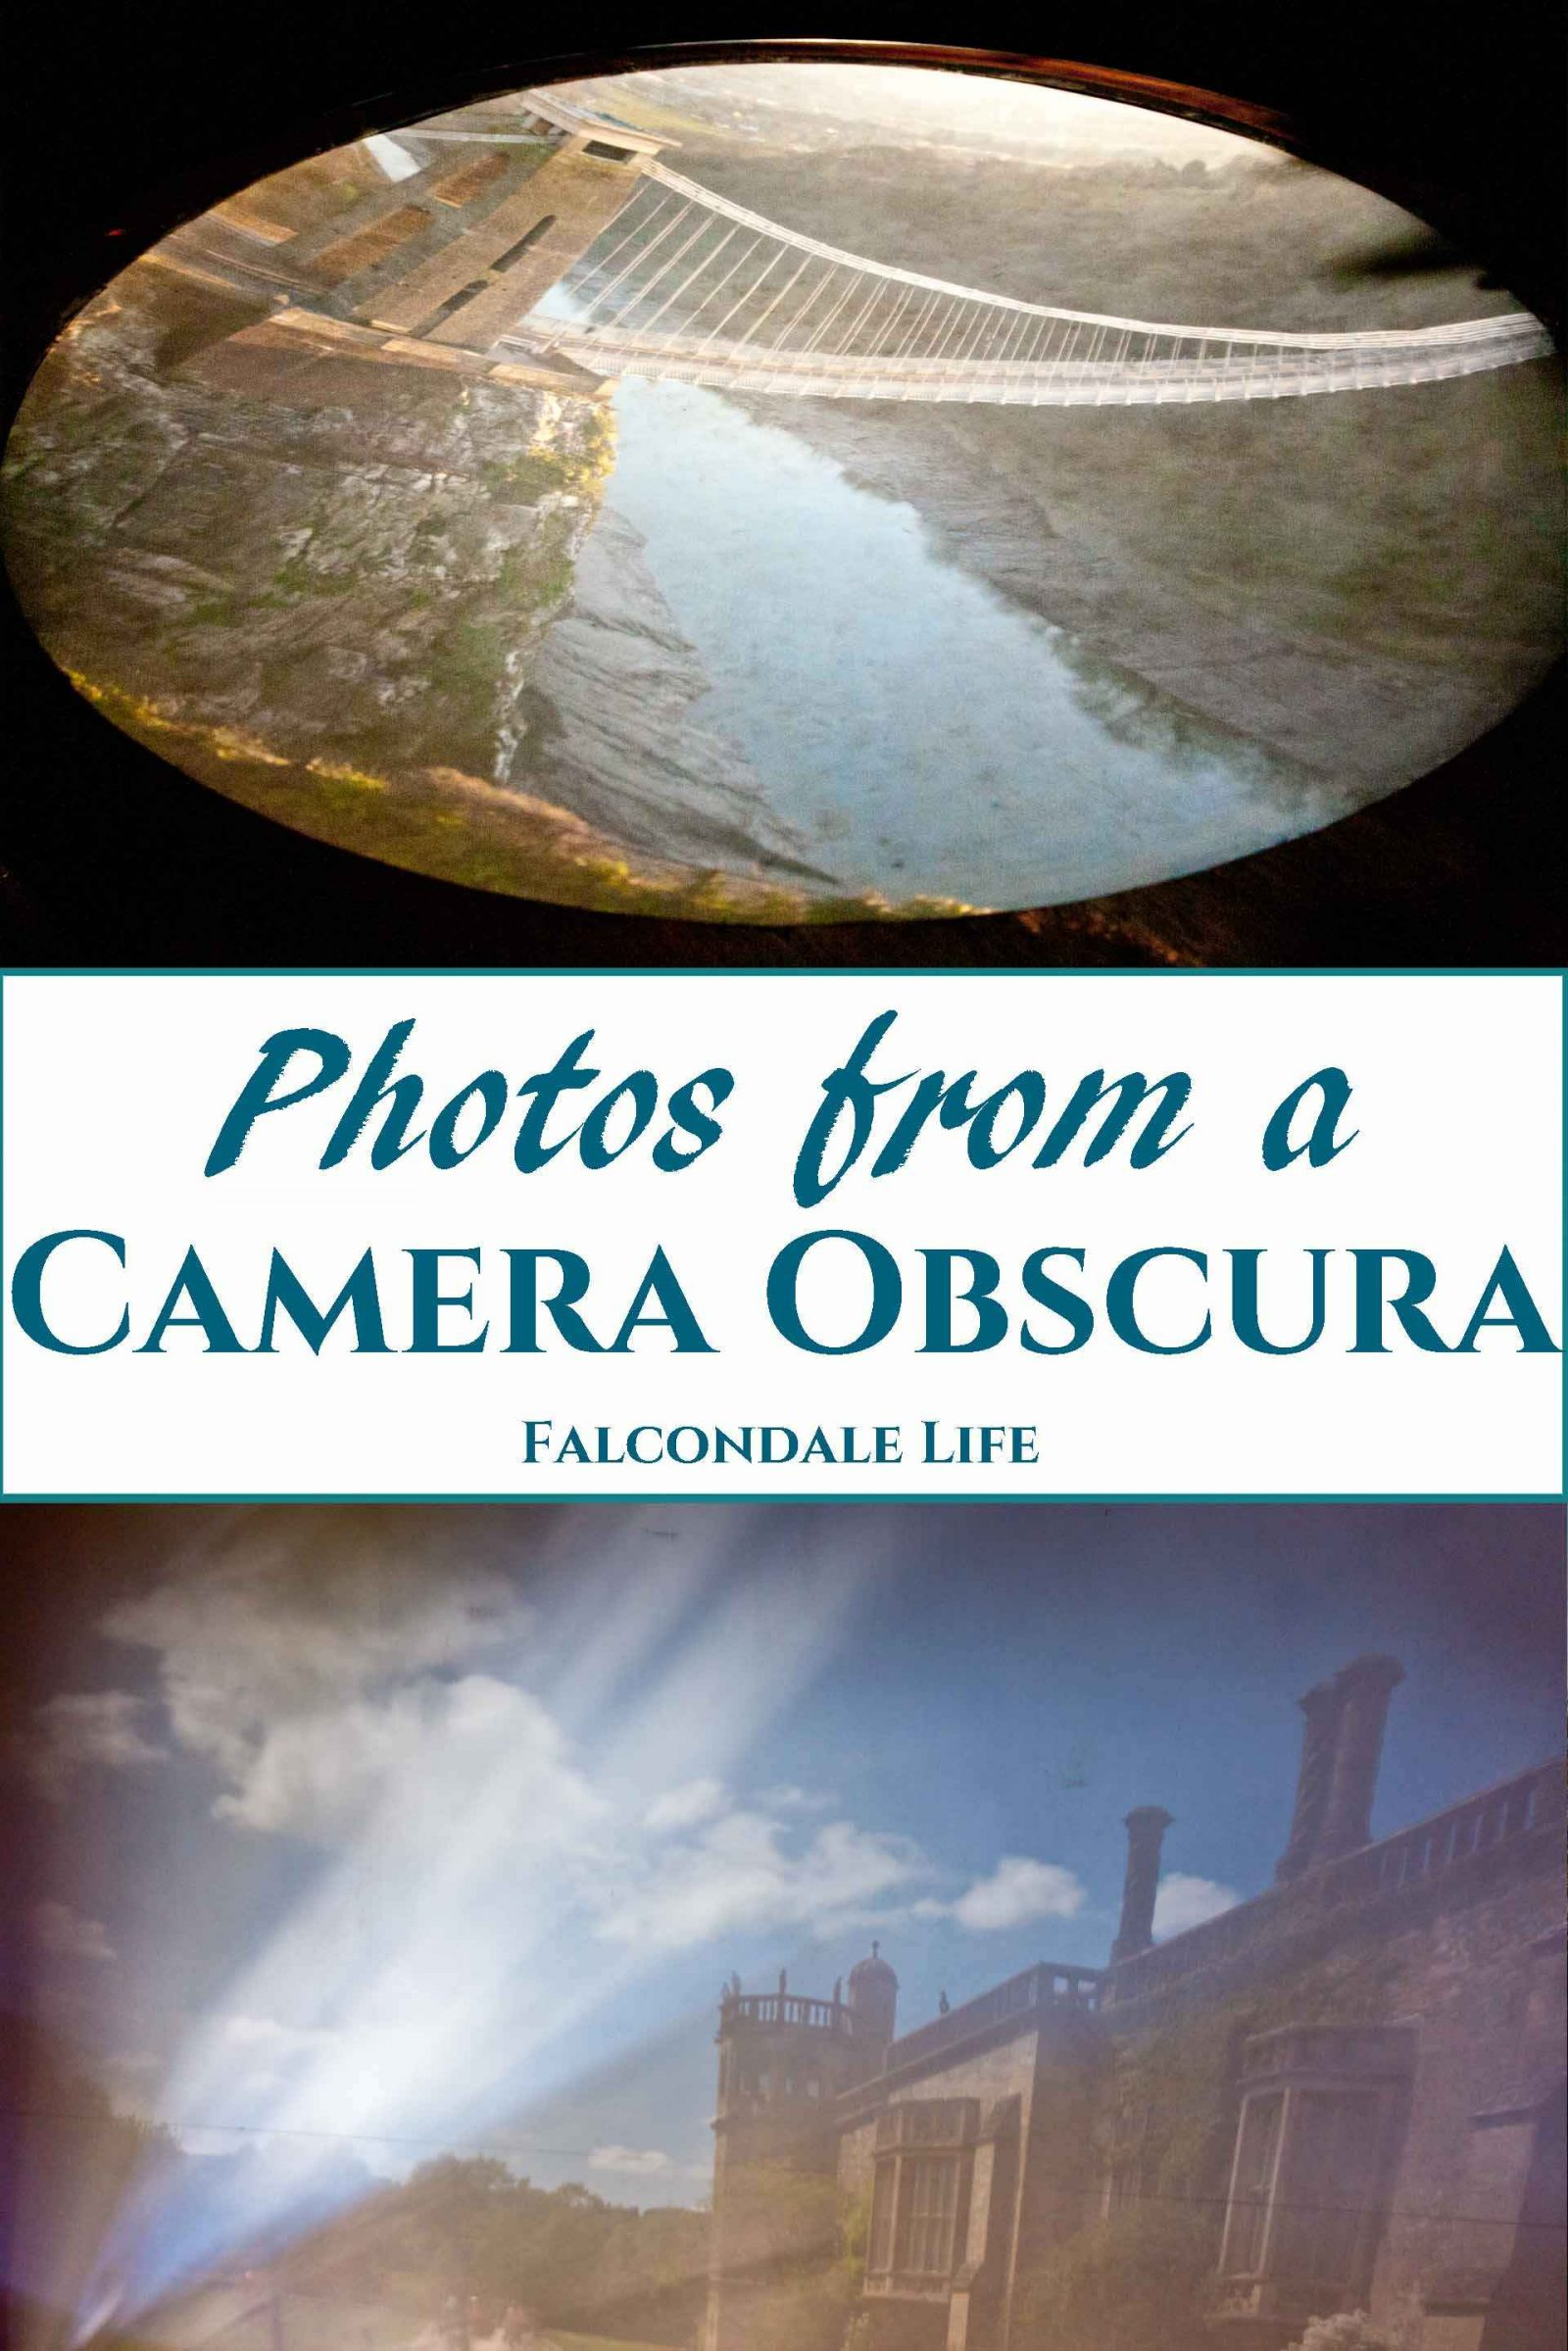 A visit to a camera obscura at Bristol or Lacock is fun to do as a family. How it works, what you will see and tips for trying to take photos of the views. Scientific and cultural interest for families on a UK day out. Photos from a Camera Obscura on Falcondale Life blog. Image description: Clifton suspension bridge and Lacock Abbey seen through a camera obscura plus blog title.